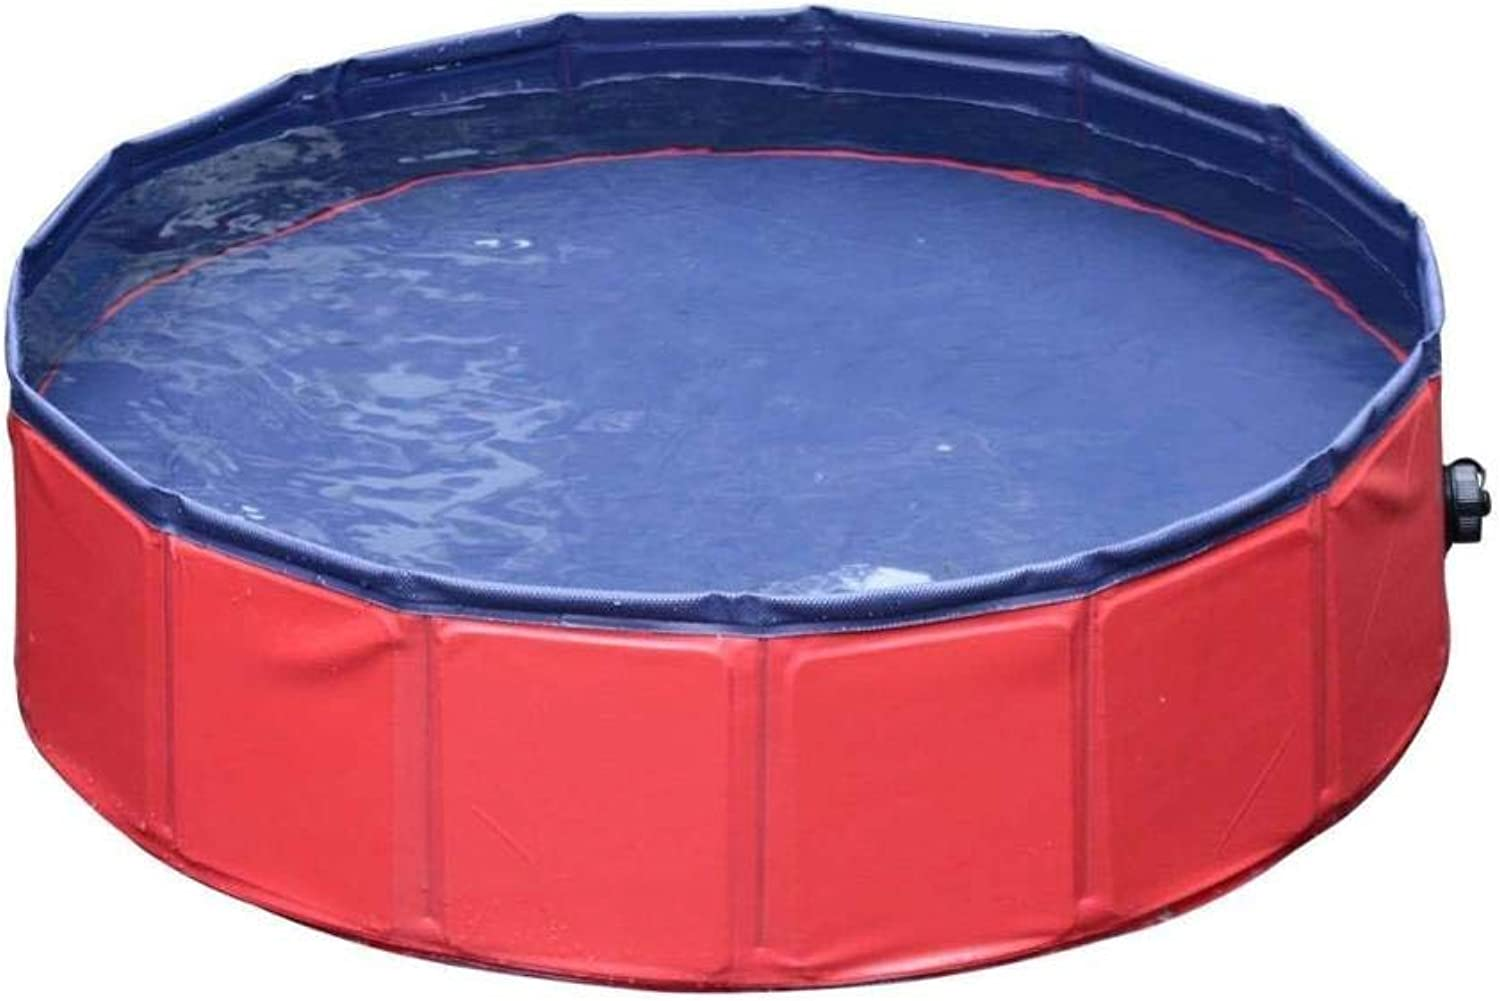 Botrong PVC Pet Swimming Pool Portable Foldable Pool Dogs Cats Bathing Tub Bathtub Wash Tub Water Pond Pool & Kiddie Pools Kids in The Garden (80x20cm 31x5 inch)